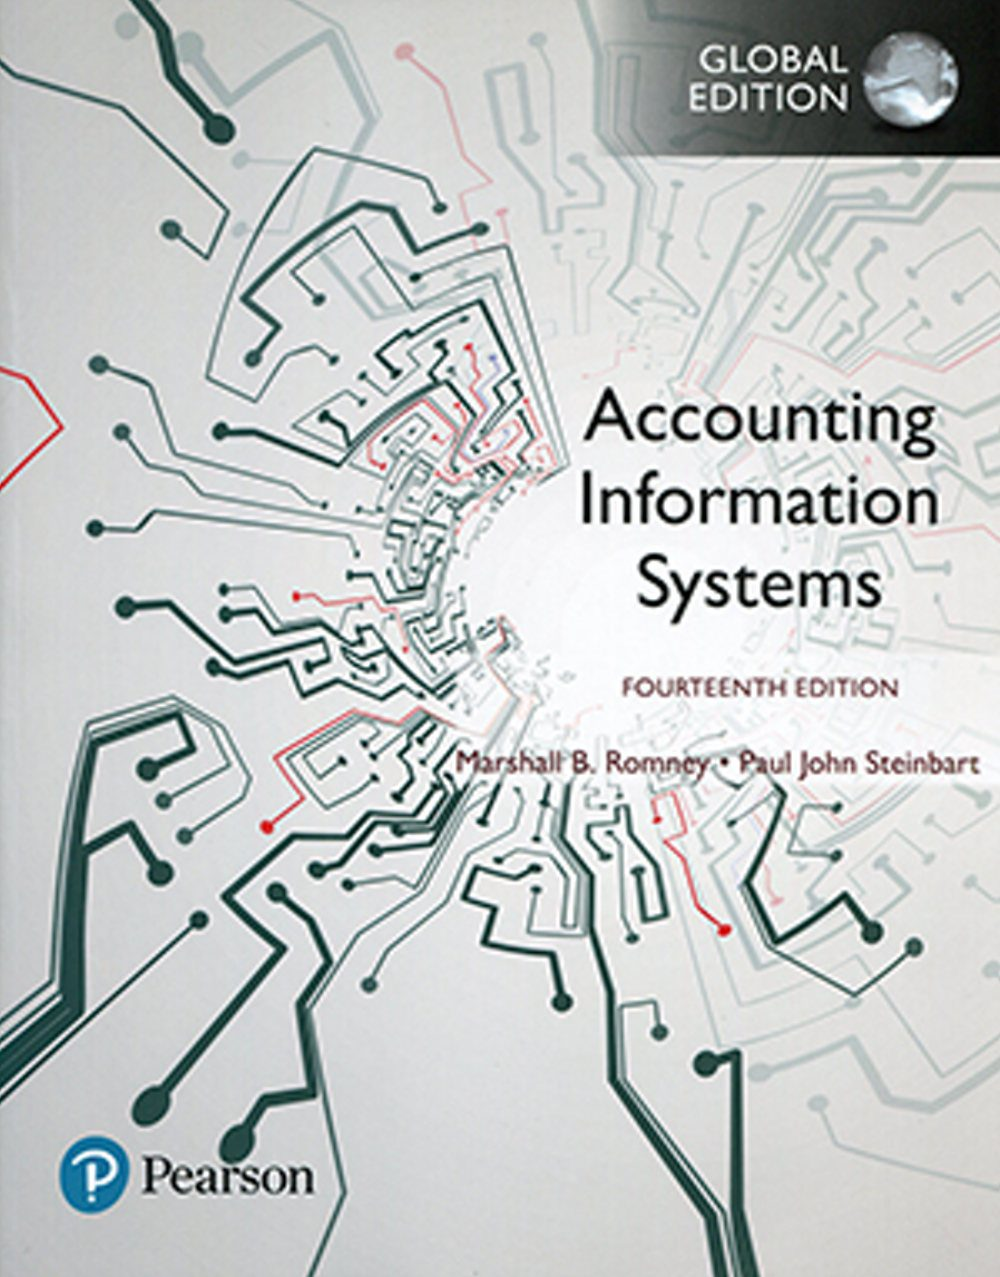 accounting information systems 12e romney steinbart Accounting information systems sixth edition james a hall peter e bennett chair in business and economics lehigh executive summary this report aims at finding suitable accounting software to replace current accounting system that no longer meet the needs of the company.